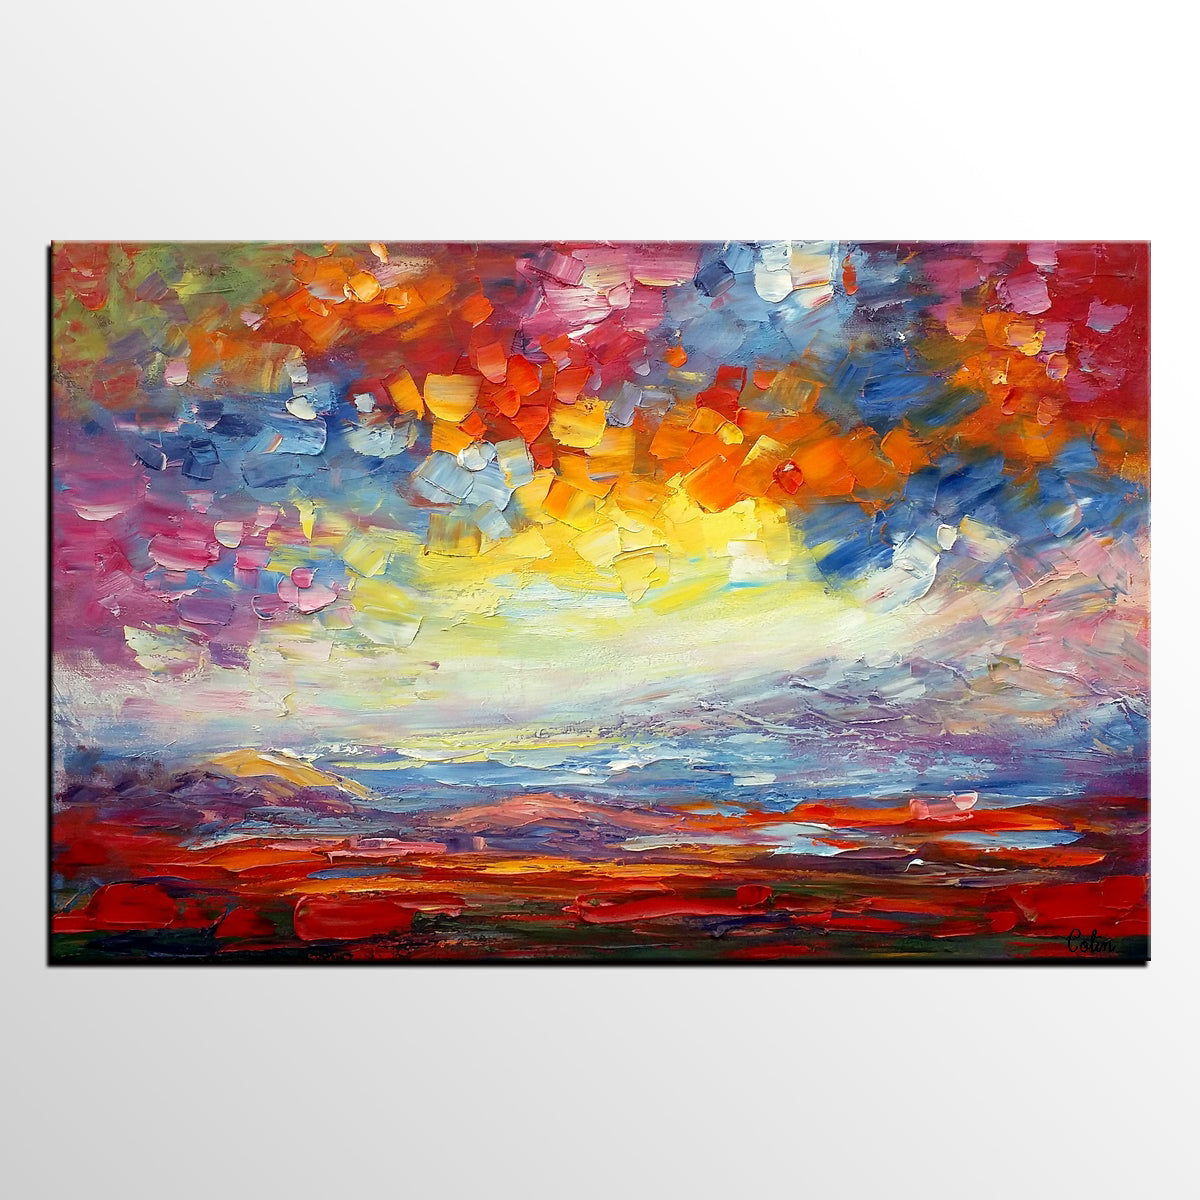 Heavy Texture Art, Abstract Landscape Painting, Oil Painting, Abstract Art, Abstract Painting, Canvas Art, Living Room Wall Art, Canvas Painting - artworkcanvas